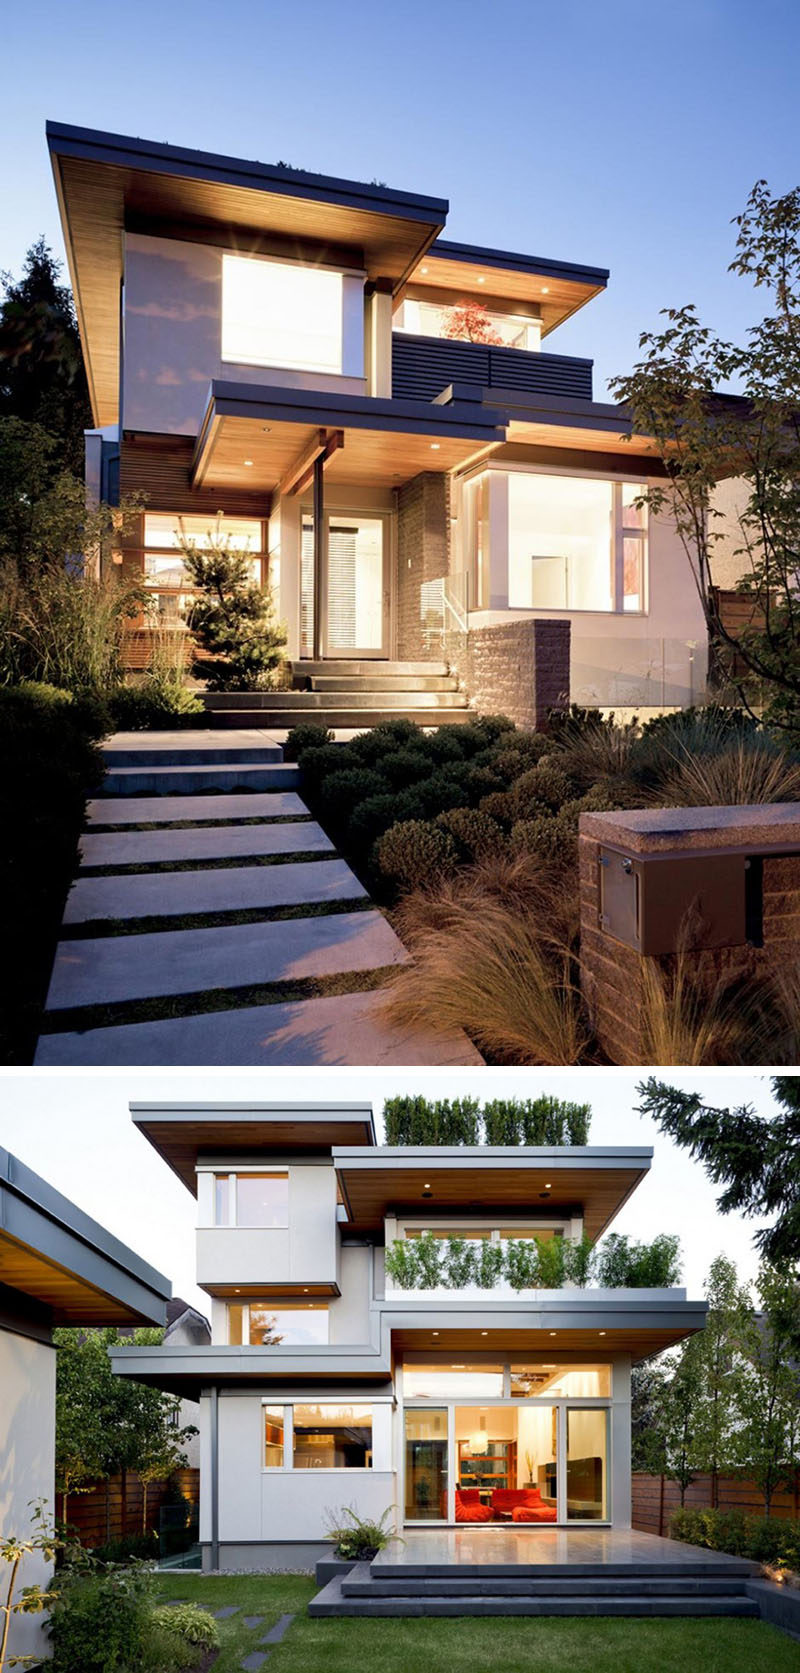 20 Awesome Examples Of Pacific Northwest Architecture // Clean lines and right angles create a geometric look while concrete, stone, and wood warm it up and make it feel cozy and inviting.